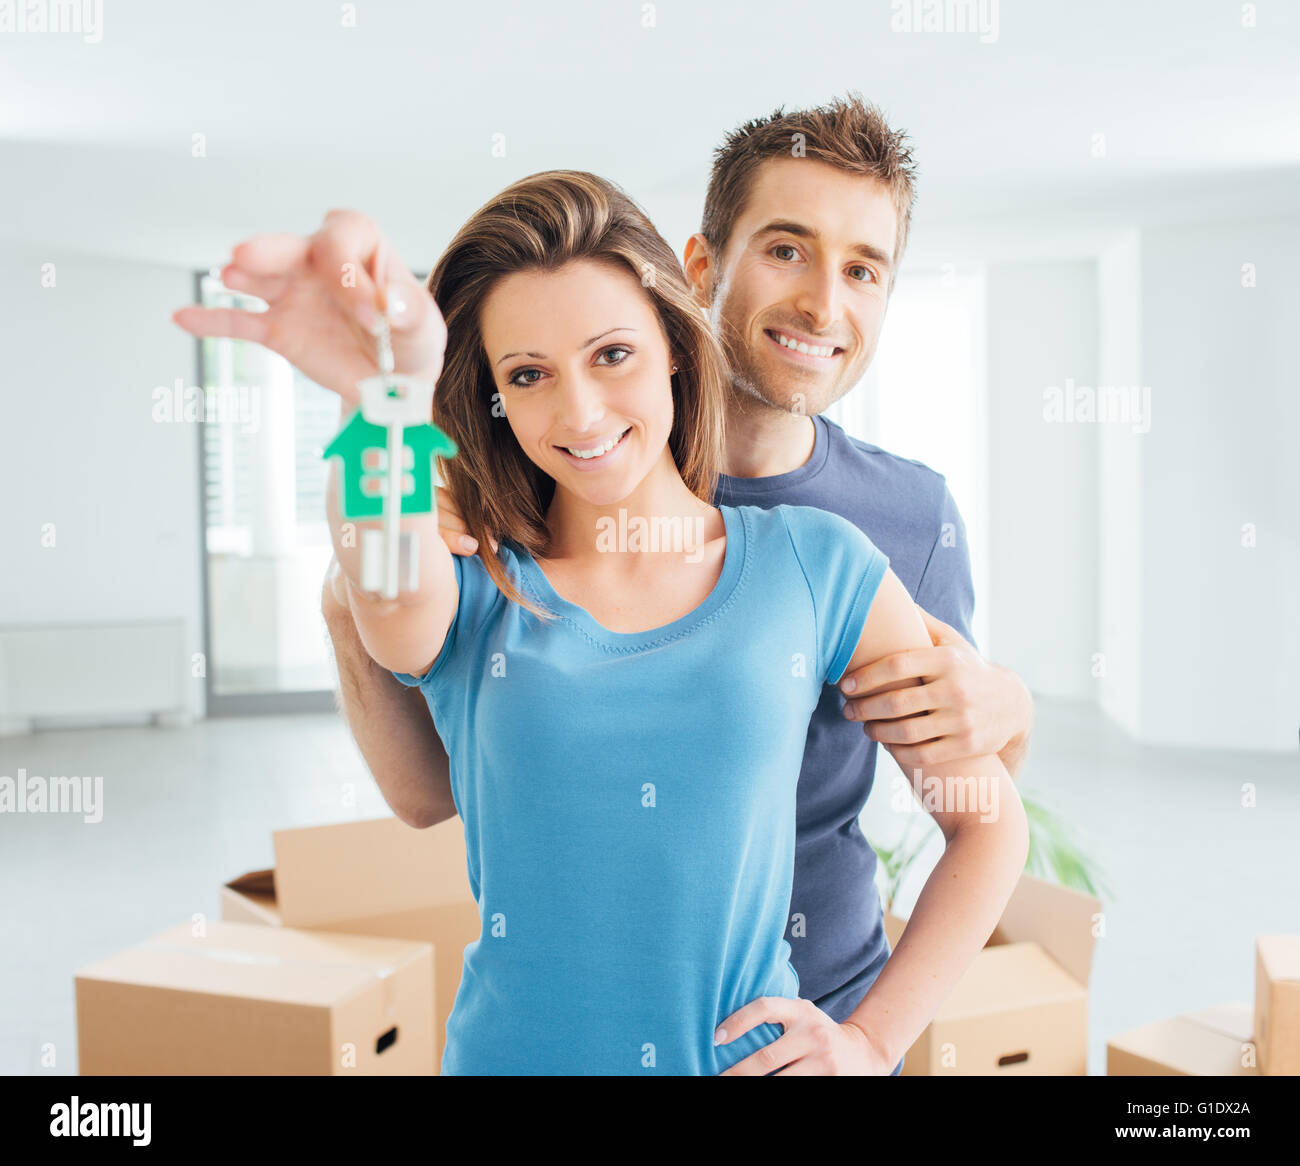 Young smiling couple holding their new house keys, real estate and relocation concept - Stock Image